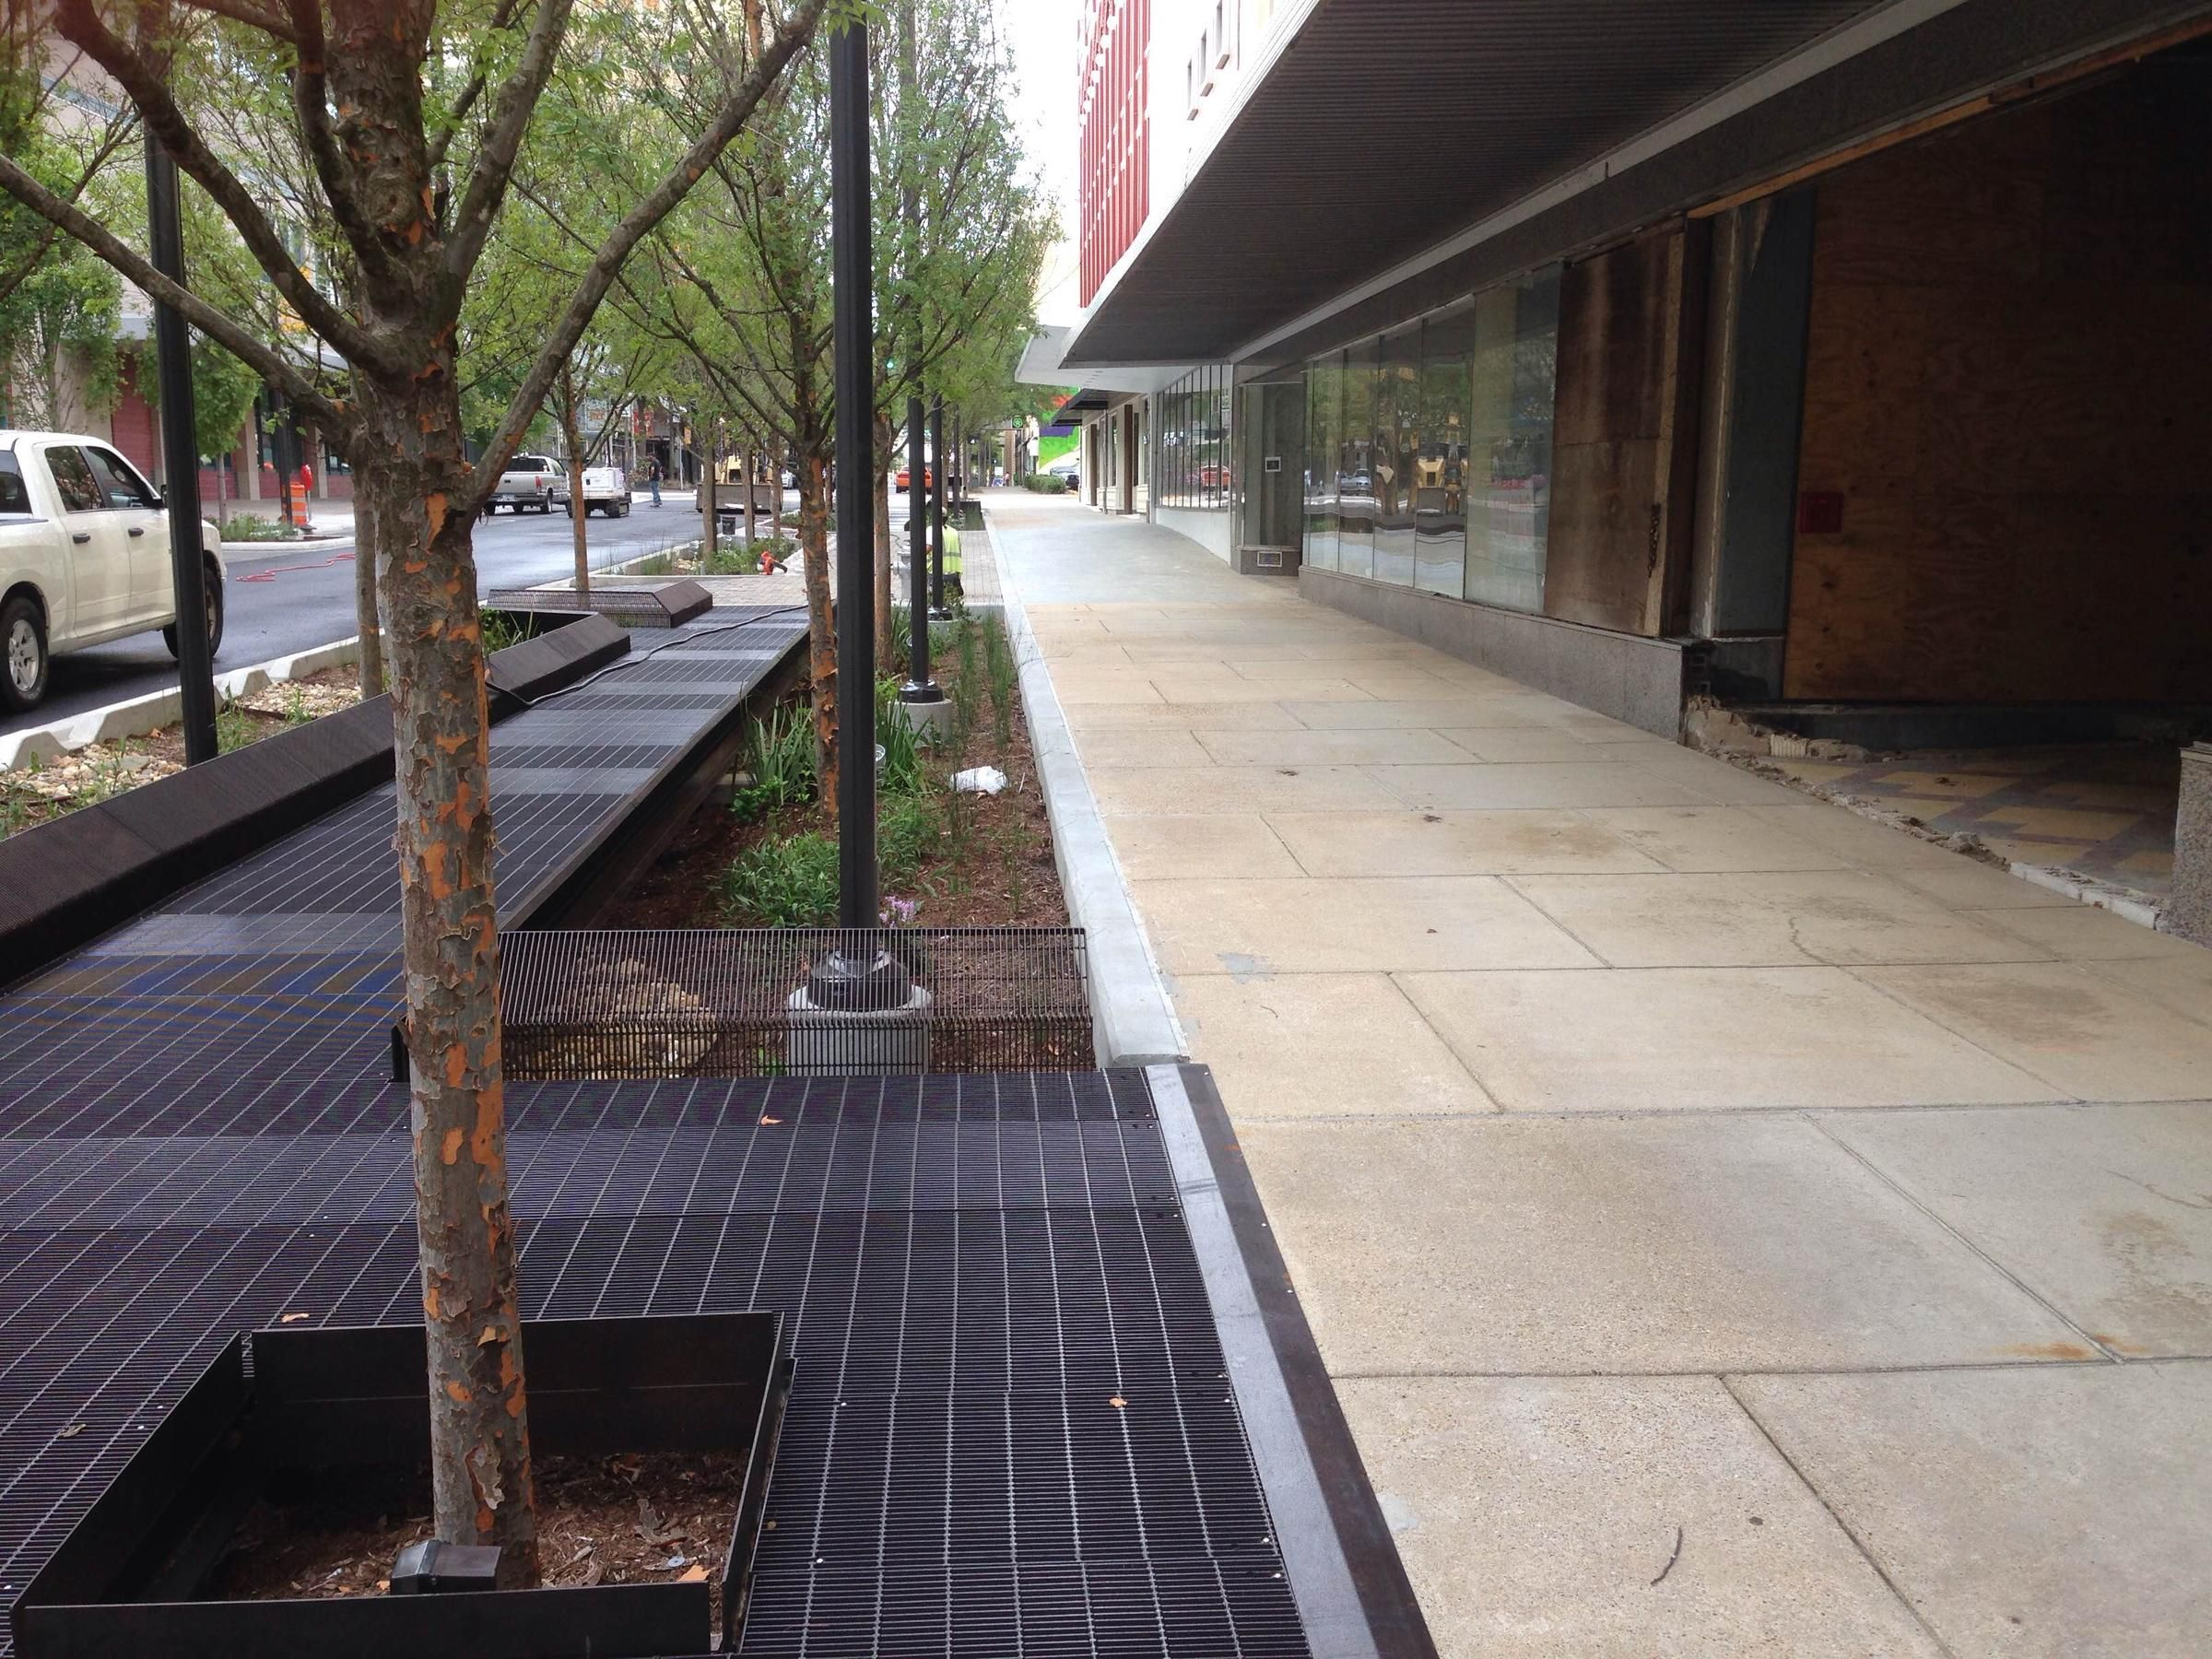 A new plantings of trees and grasses in bioswales border the walkway ...